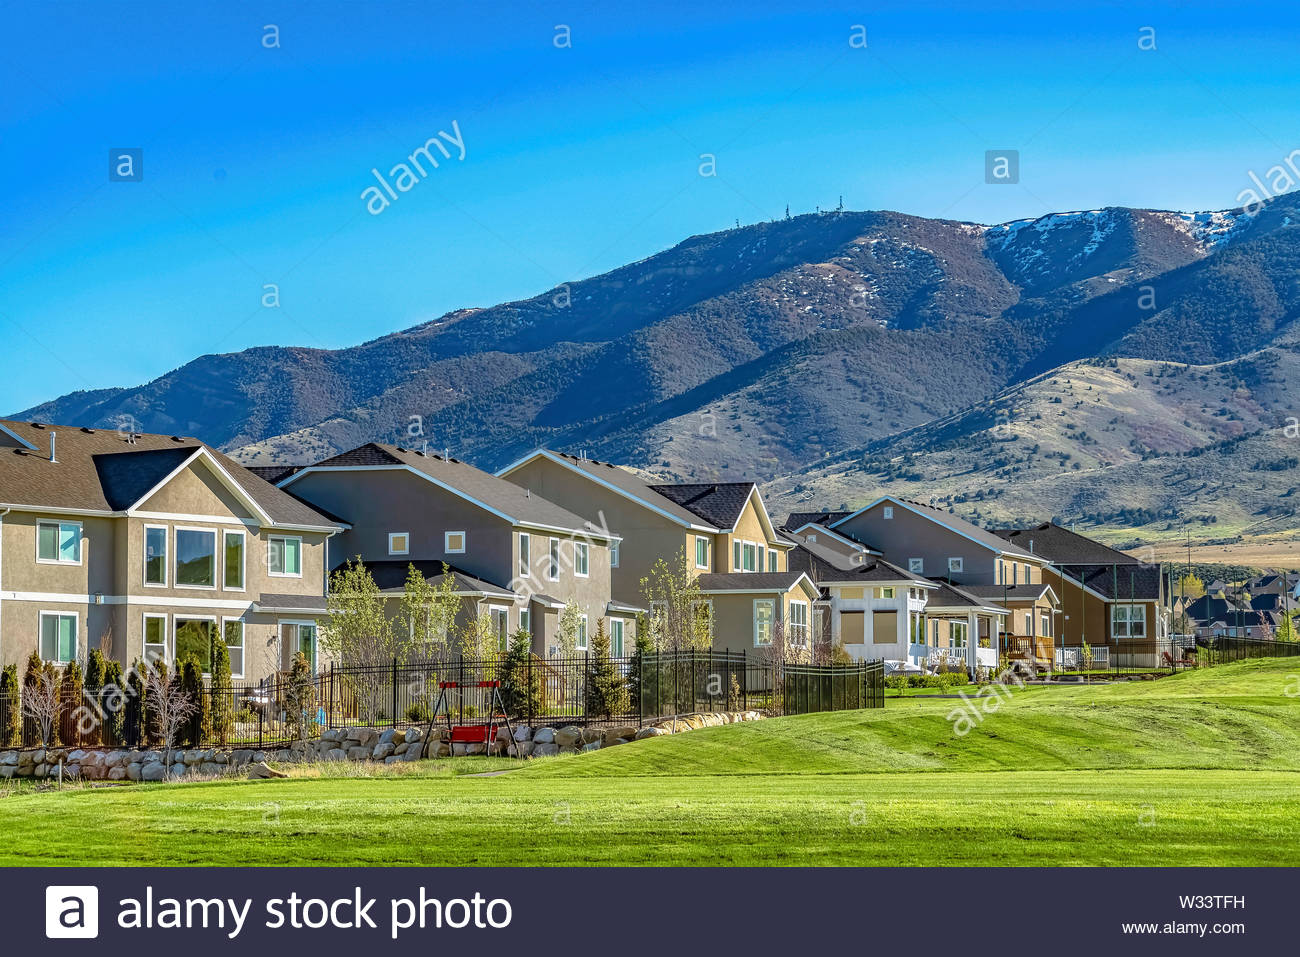 Multi storey homes with towering mountain and blue sky background 1300x957